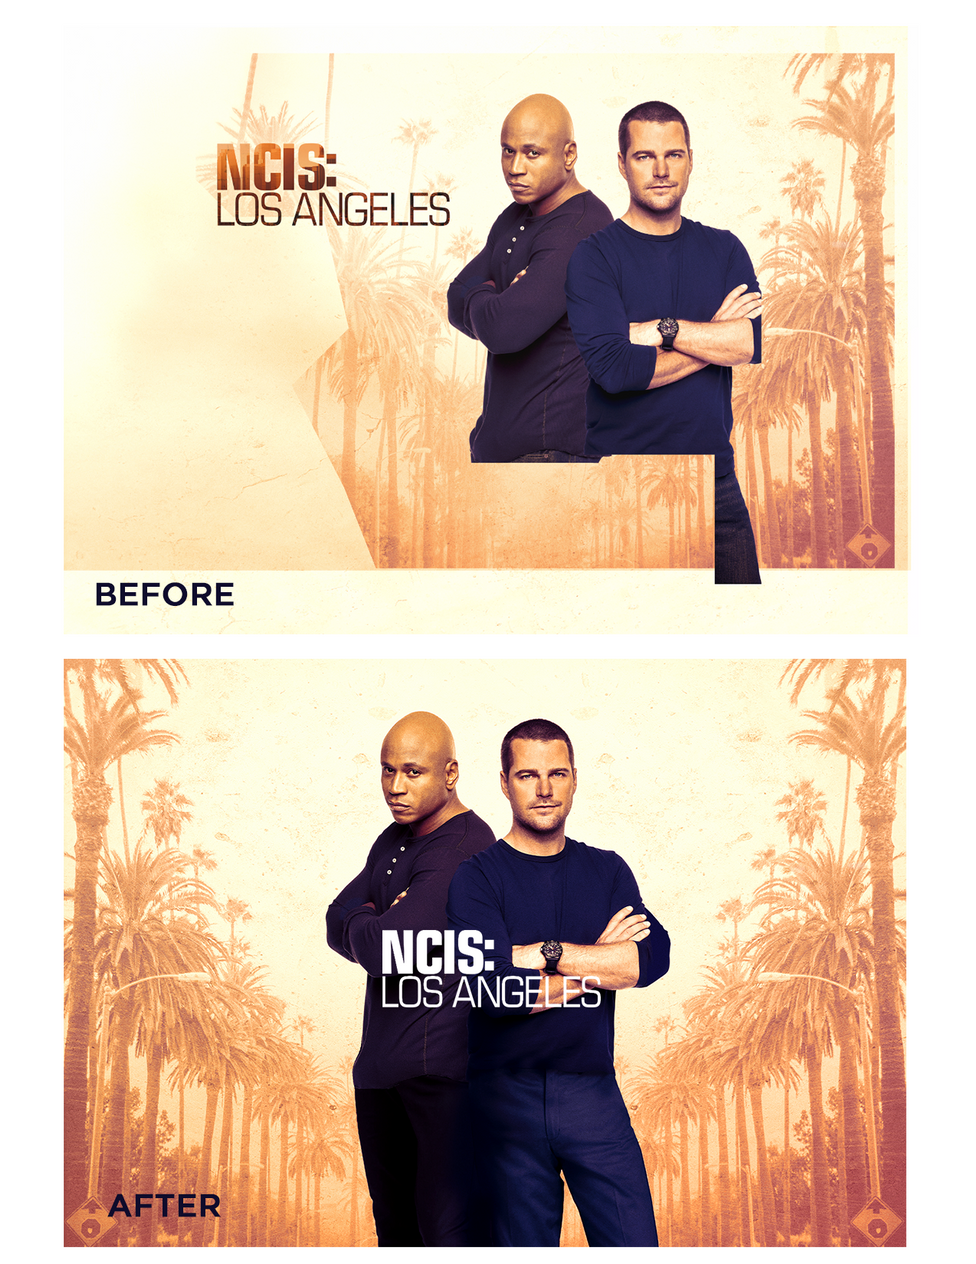 NCIS_BeforeandAfter_8.5x11.png